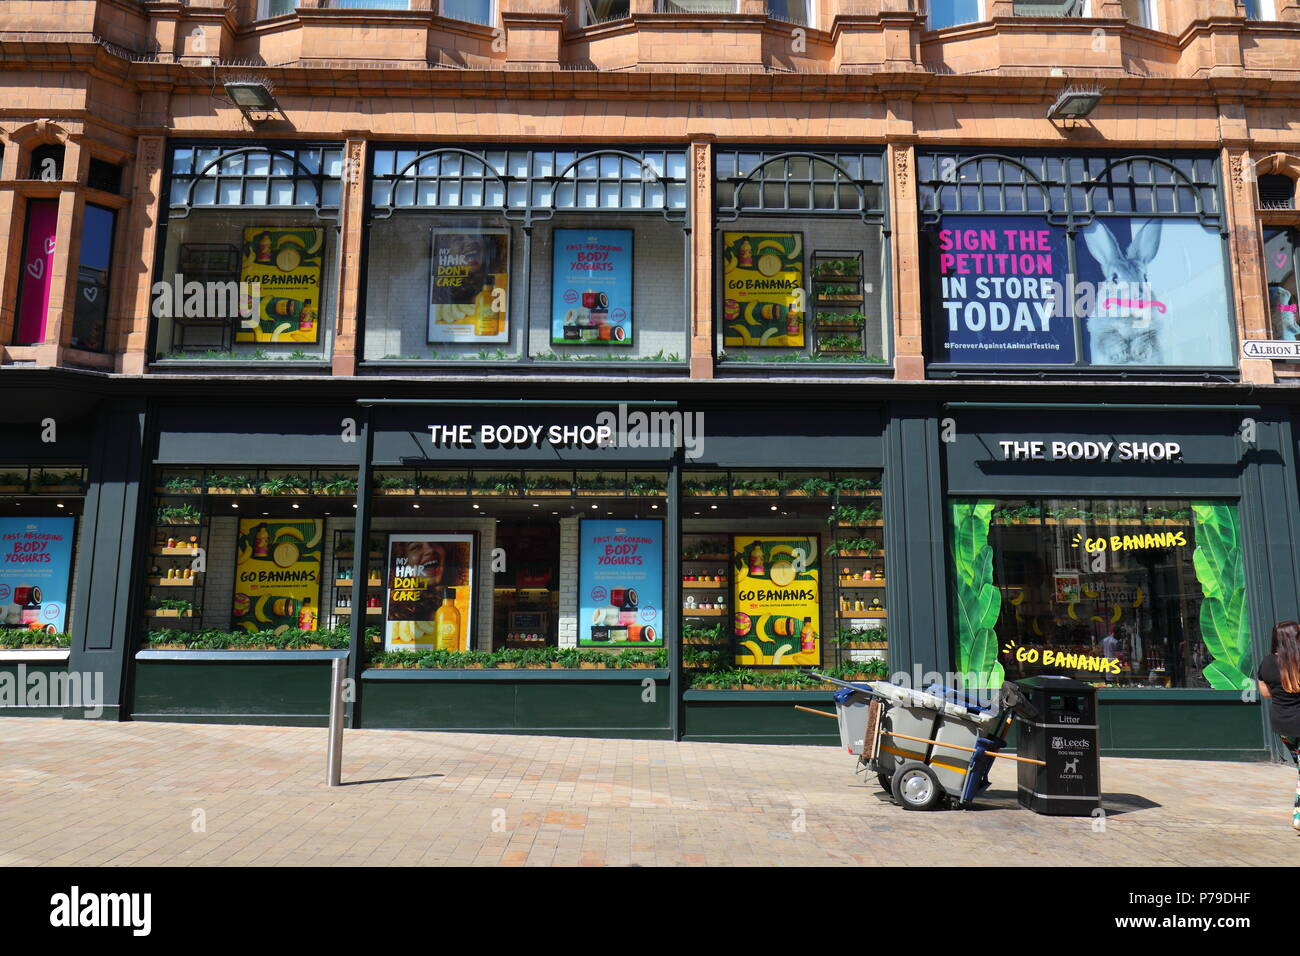 The Body Shop on Briggate in Leeds City Centre - Stock Image